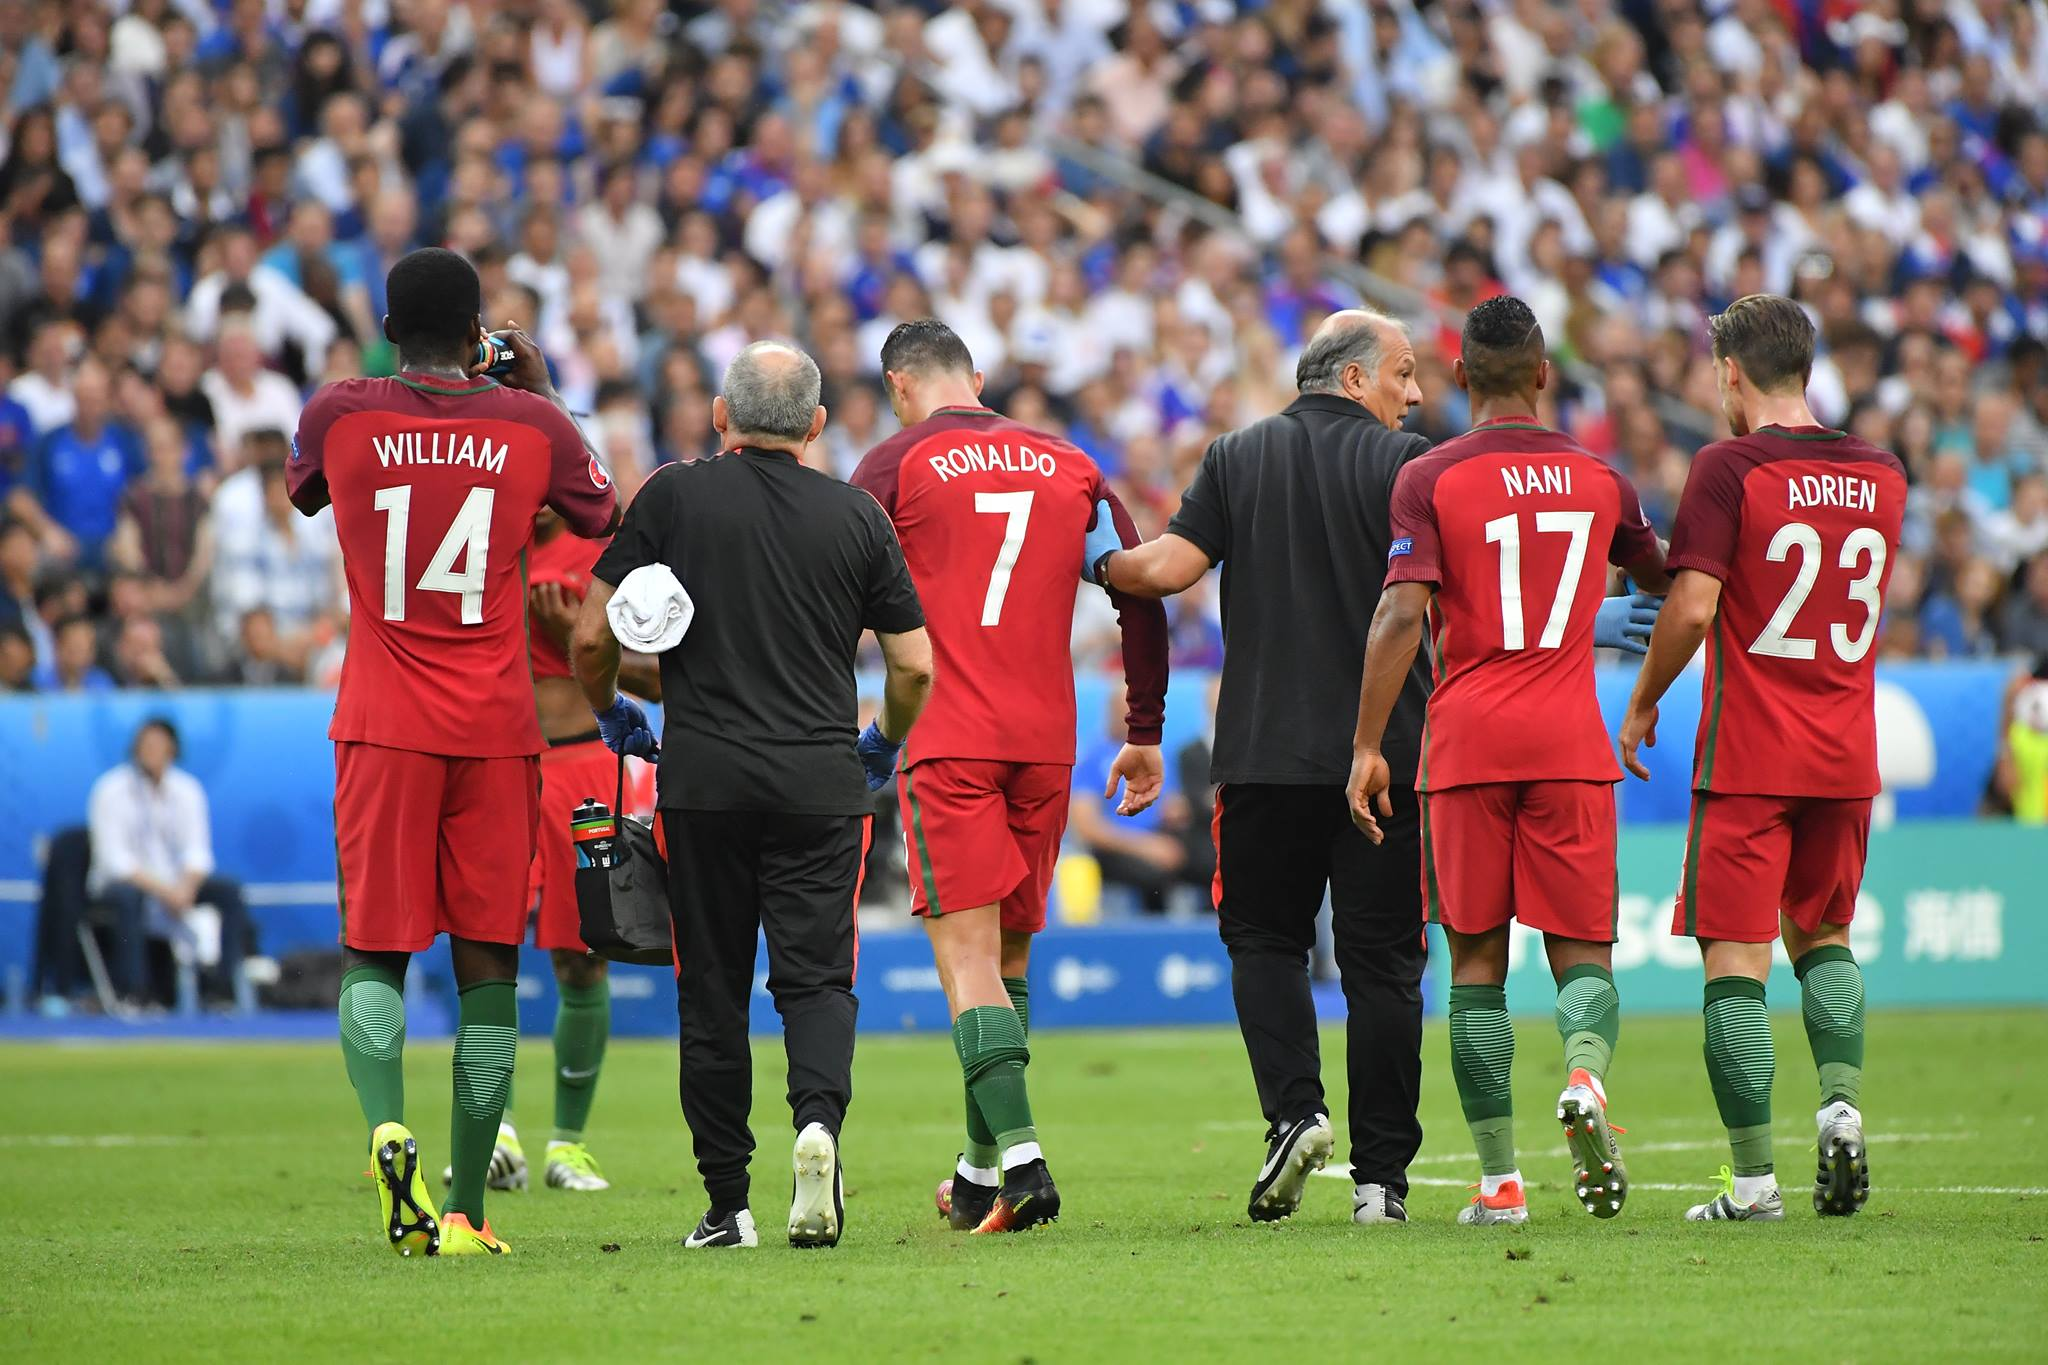 Ronaldo limps off the pitch aided by the medical team. Image: PA